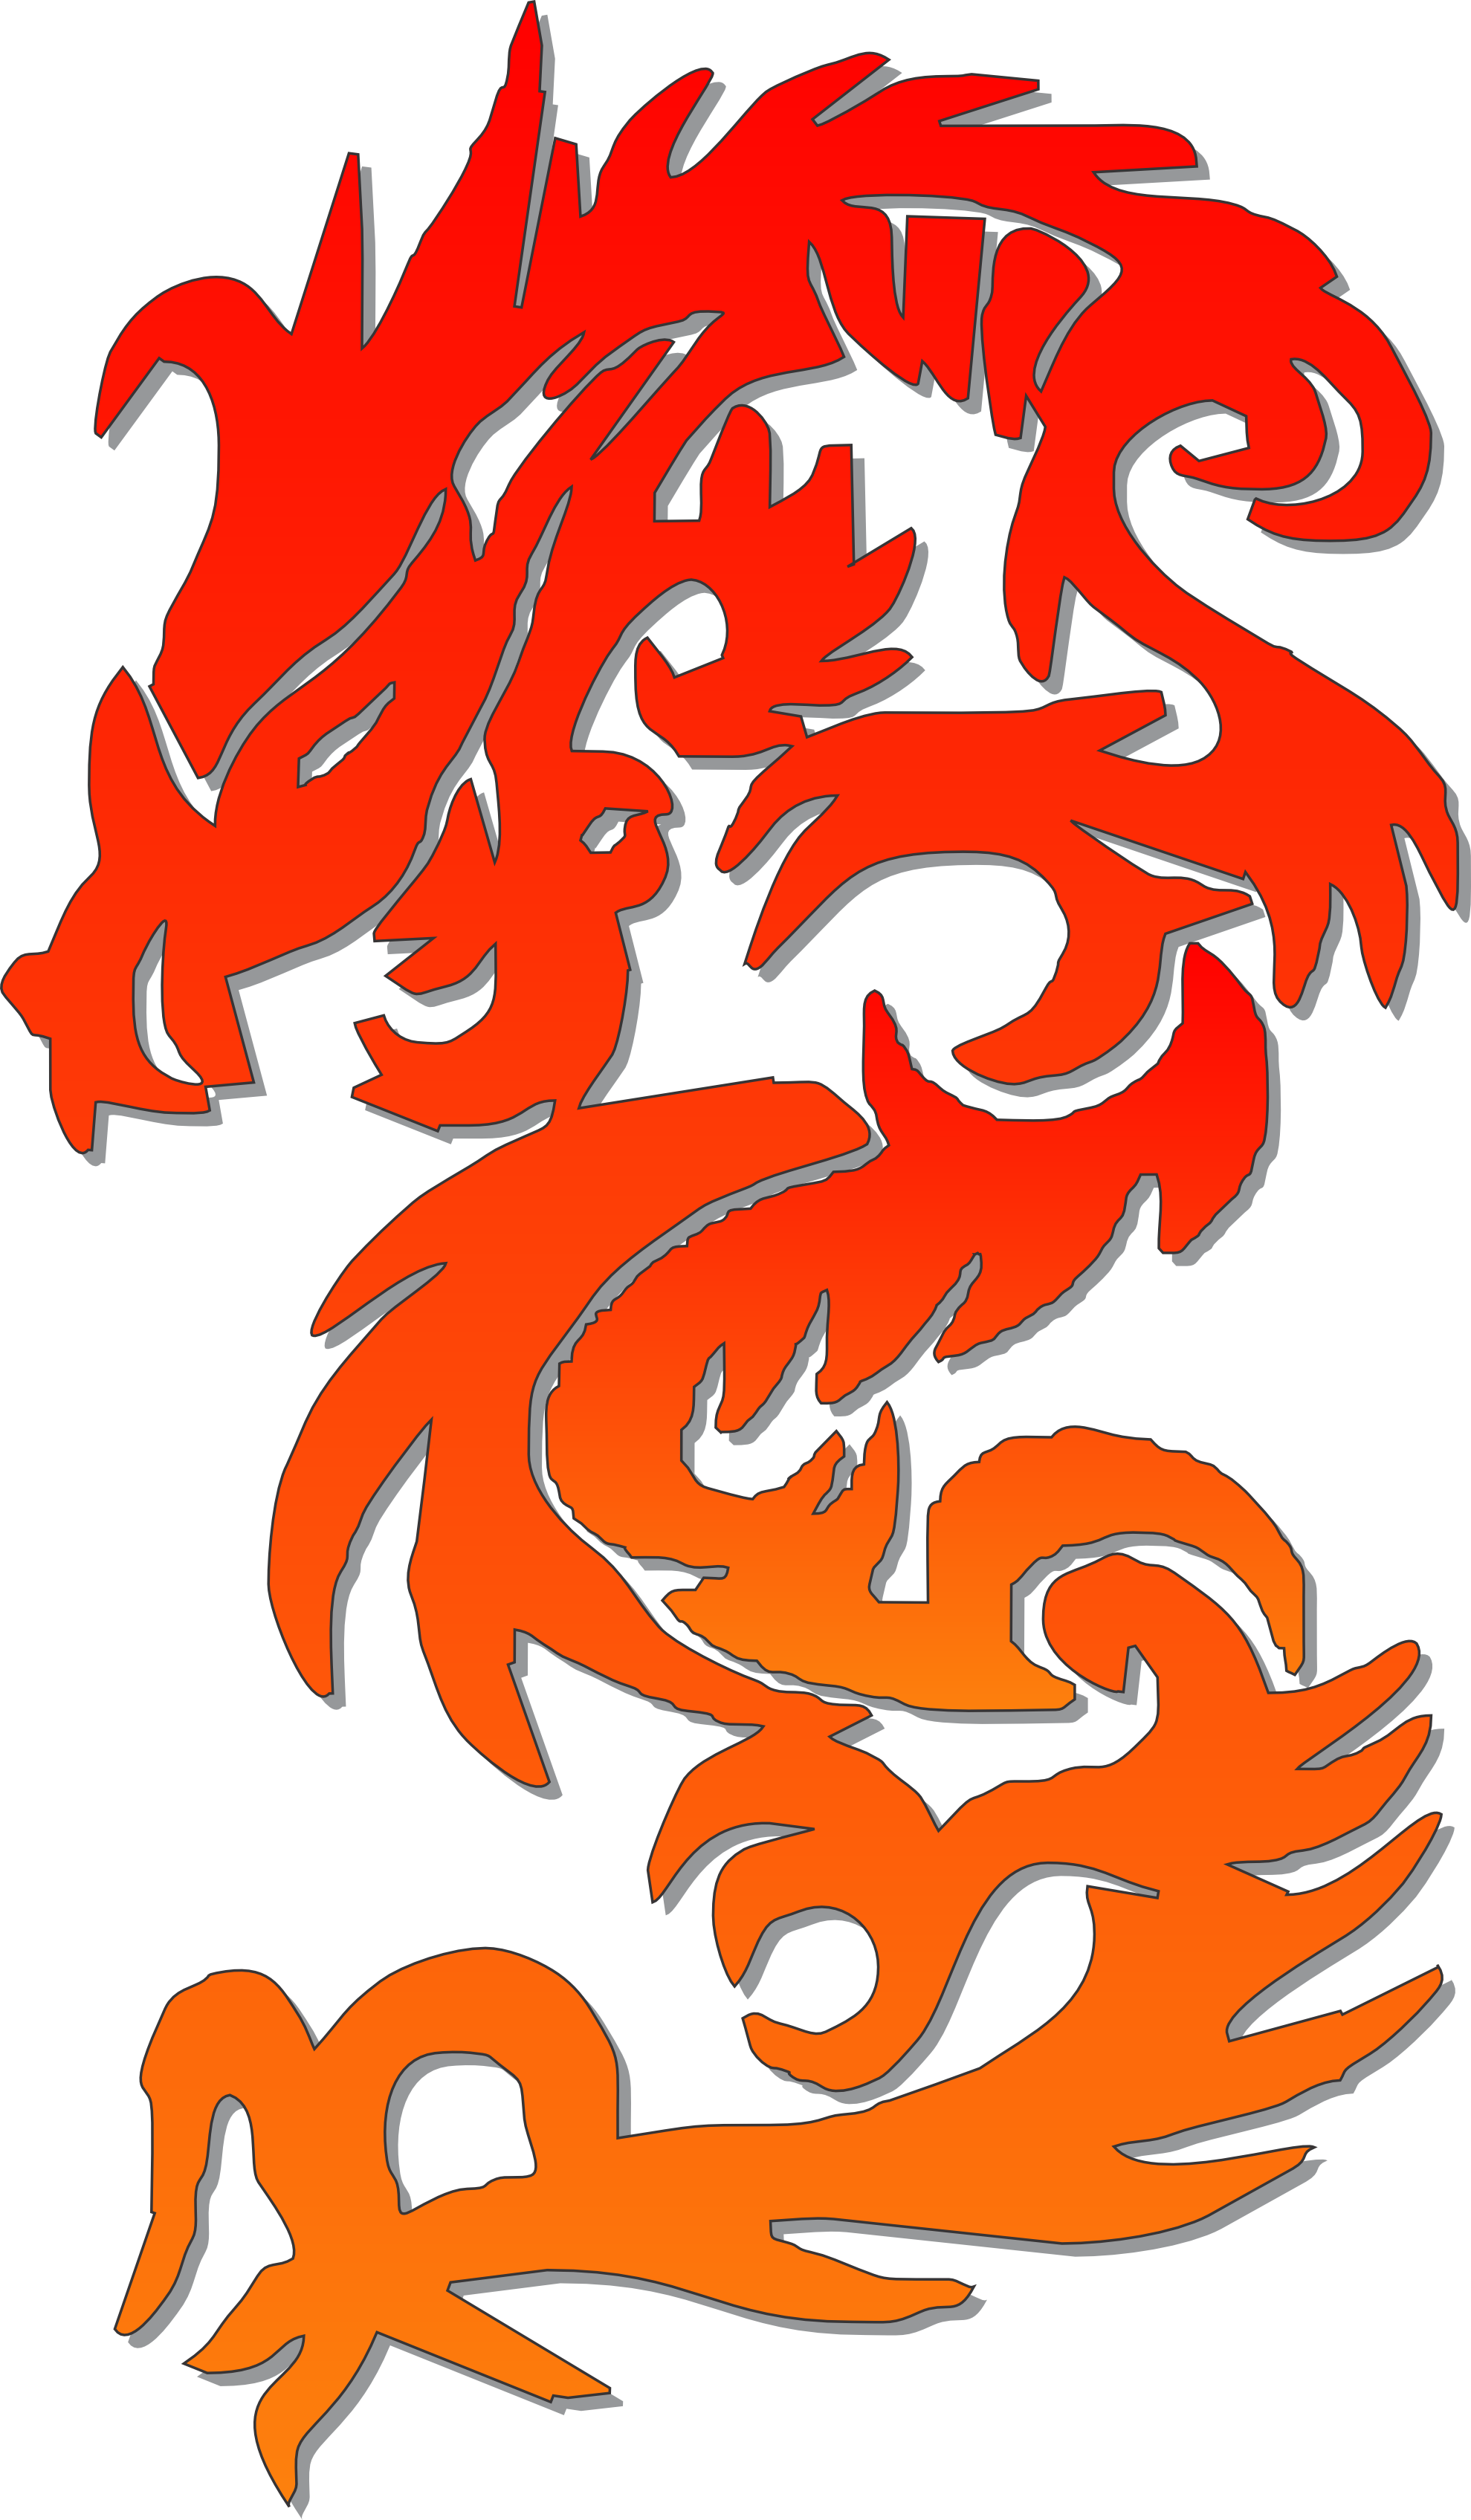 Download chinese dragon png pic hq png image freepngimg chinese dragon png pic png image buycottarizona Image collections